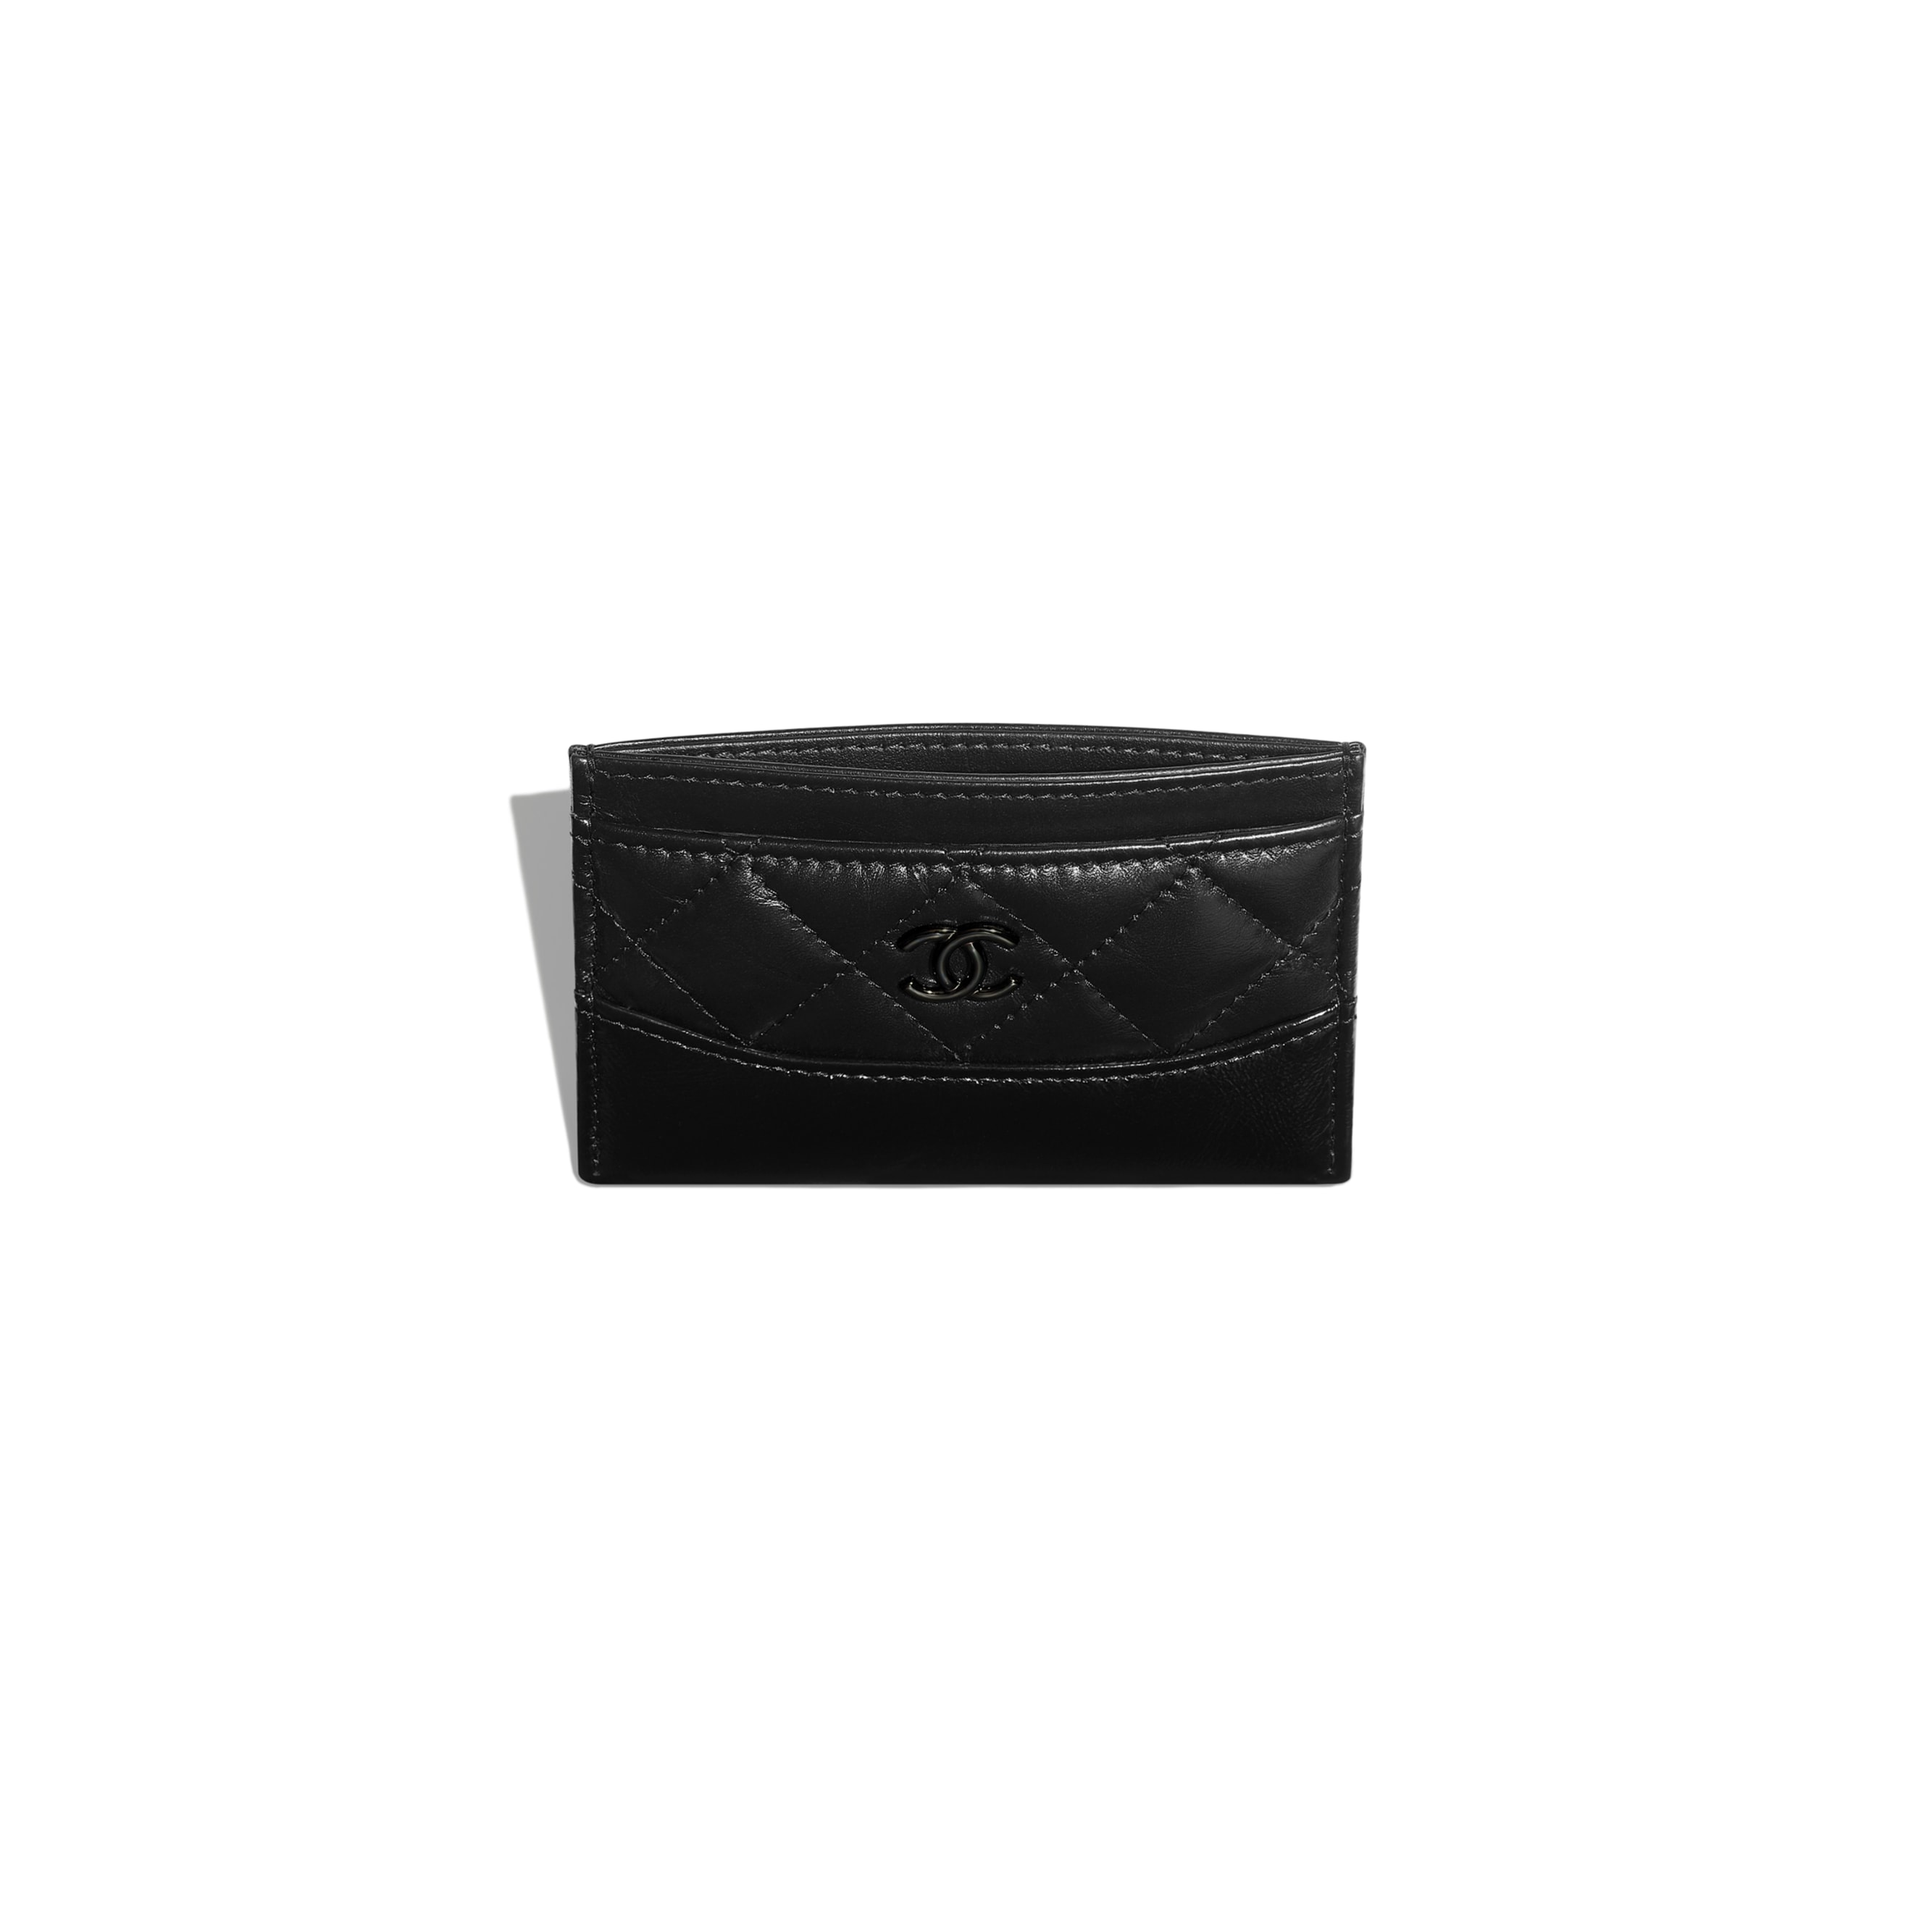 Card Holder - Black - Aged Calfskin, Smooth Calfskin & Black Metal - CHANEL - Other view - see standard sized version